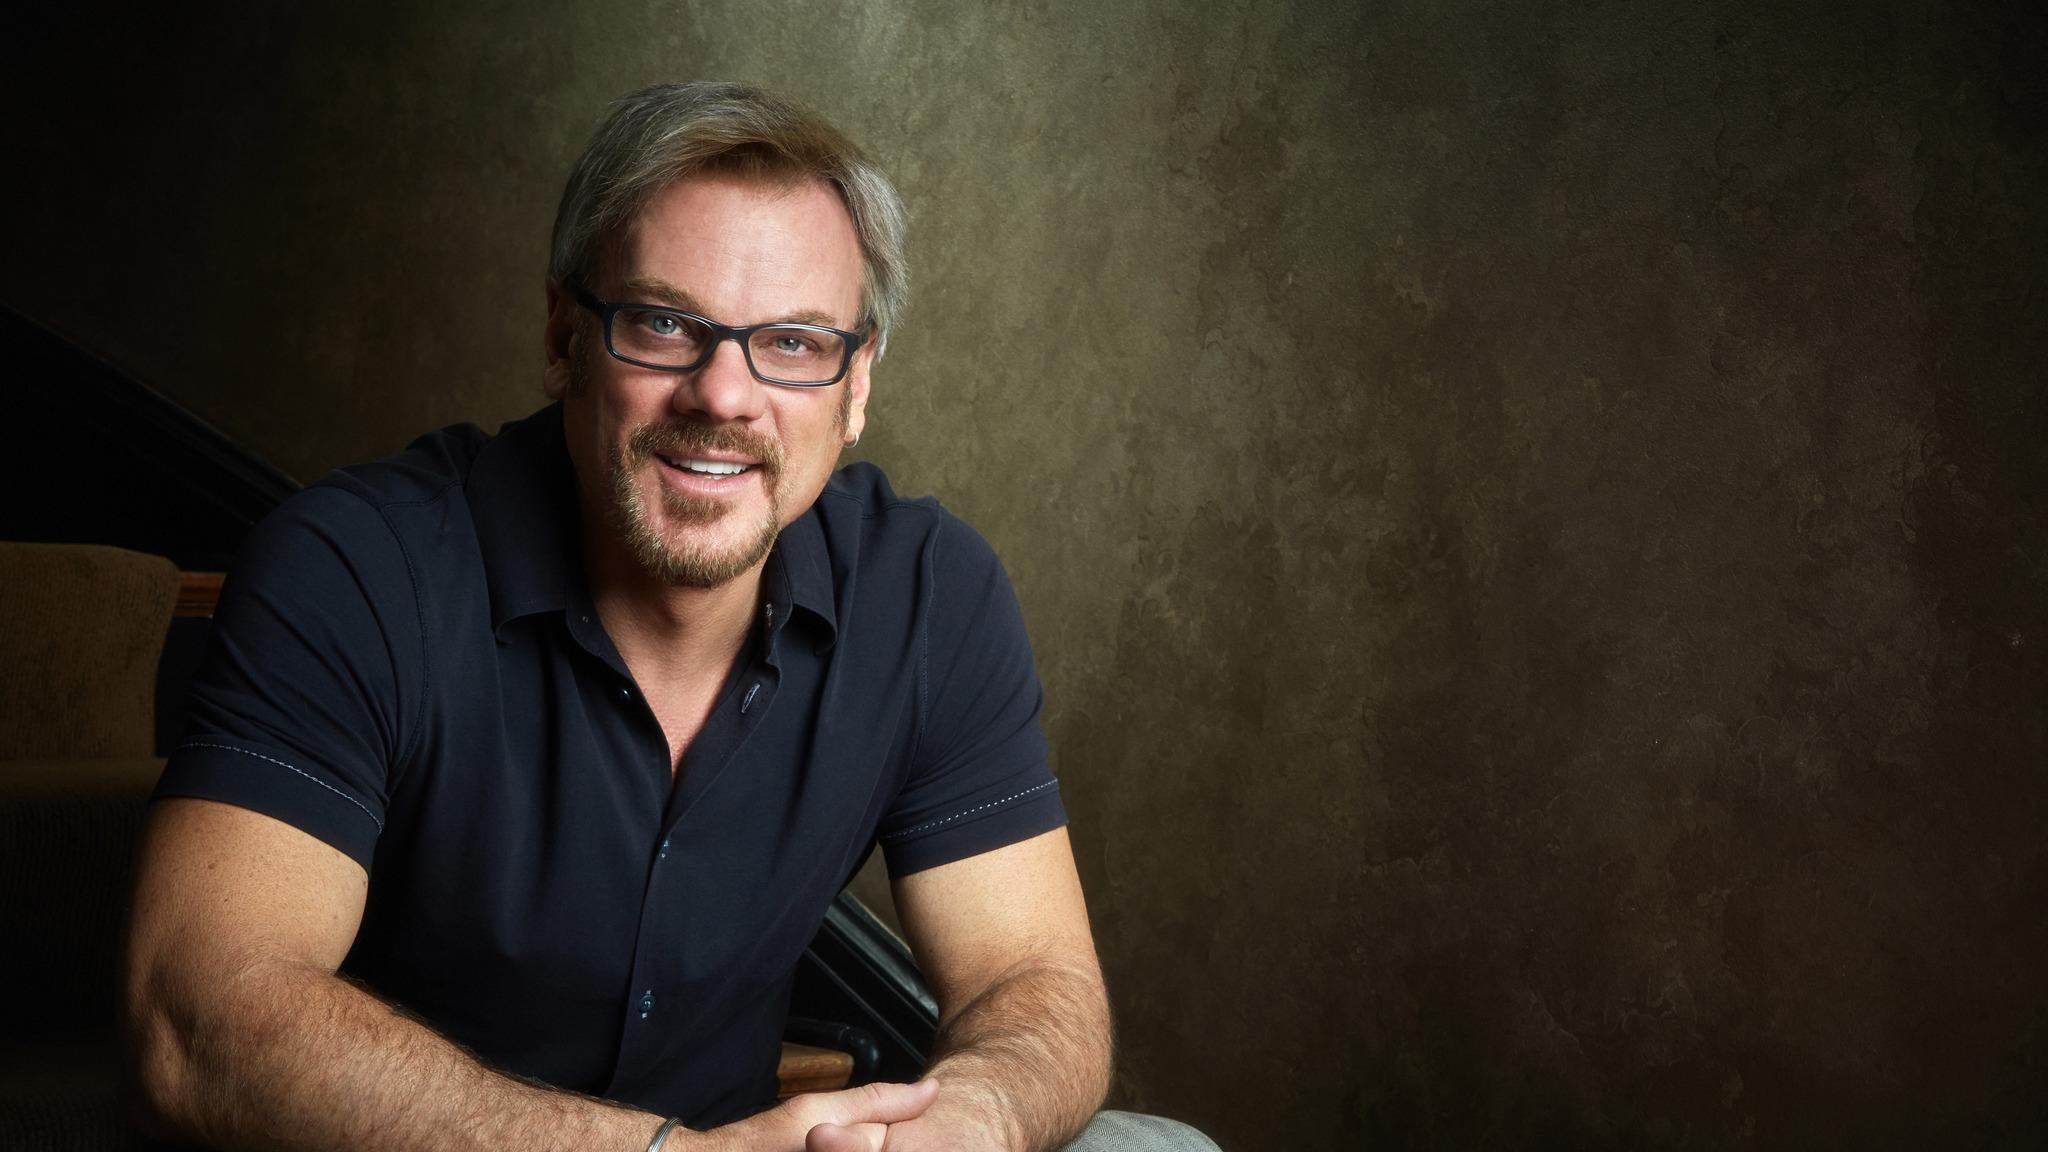 Phil Vassar at The Fox Theater at Foxwoods Resort Casino - Mashantucket, CT 06355